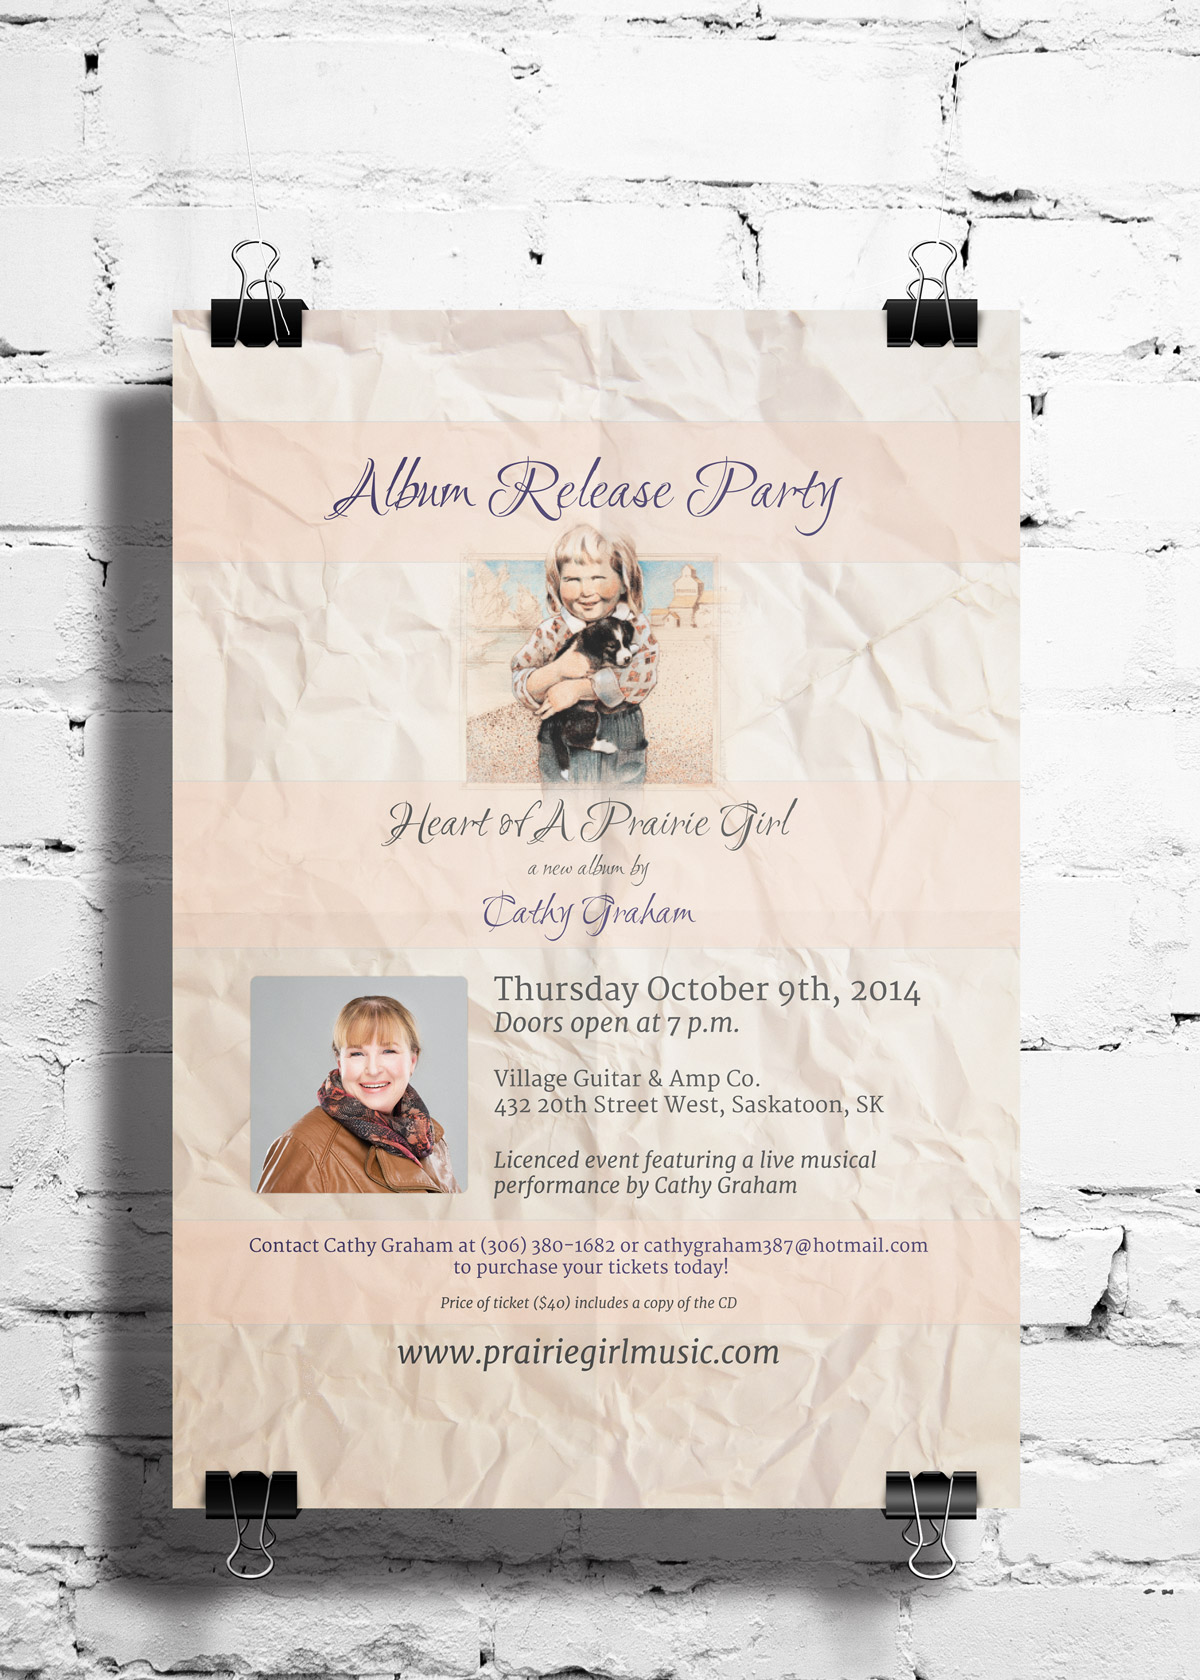 Heart of a Prairie Girl - Album Launch Poster 2014